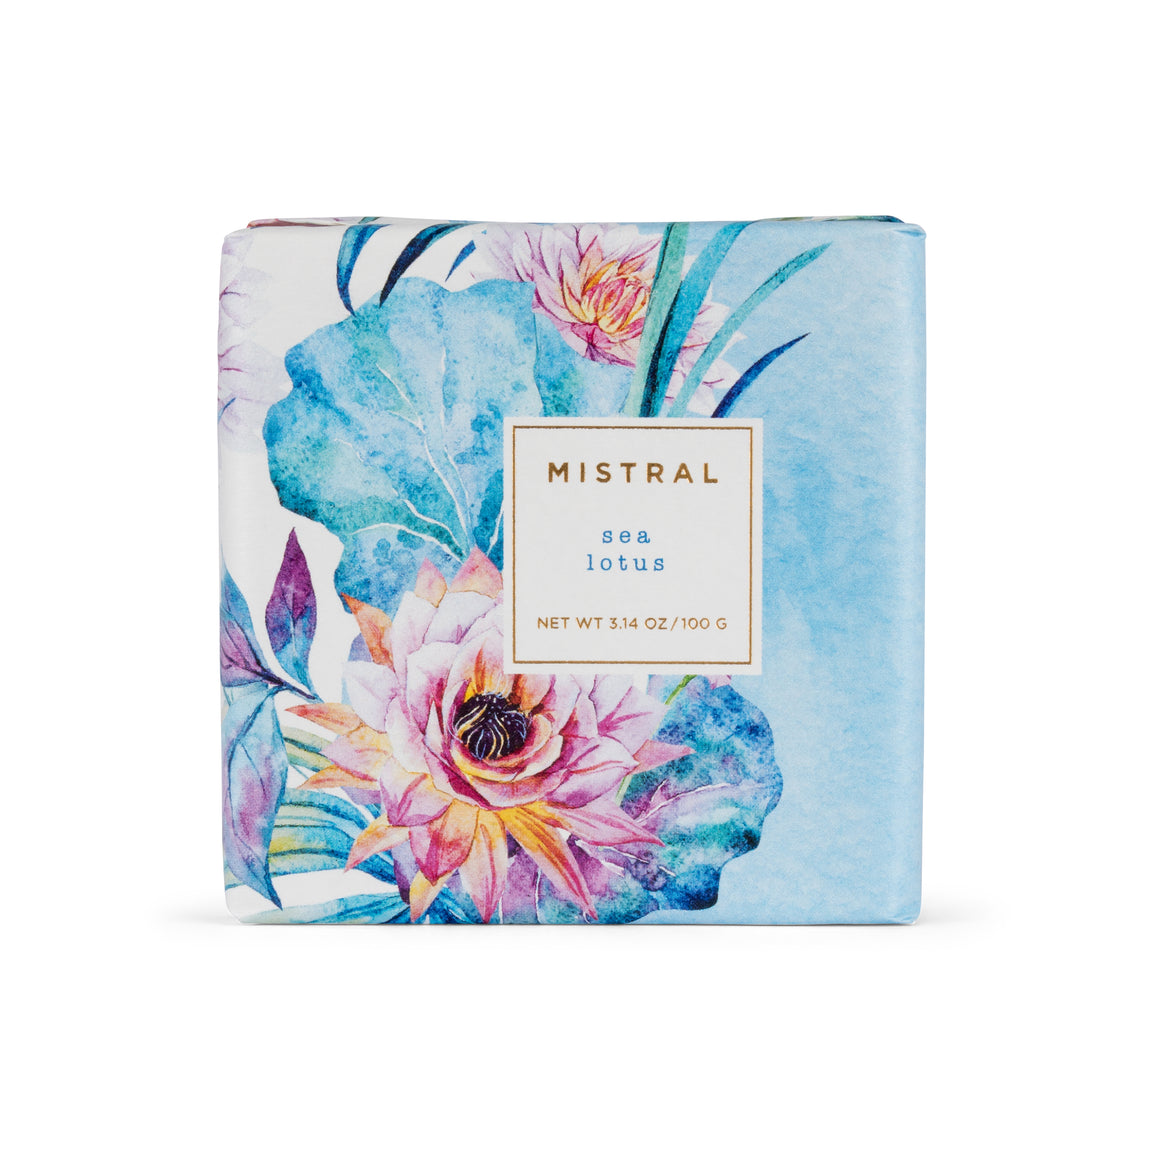 Sea Lotus Exquisite Florals Petite Gift Soap